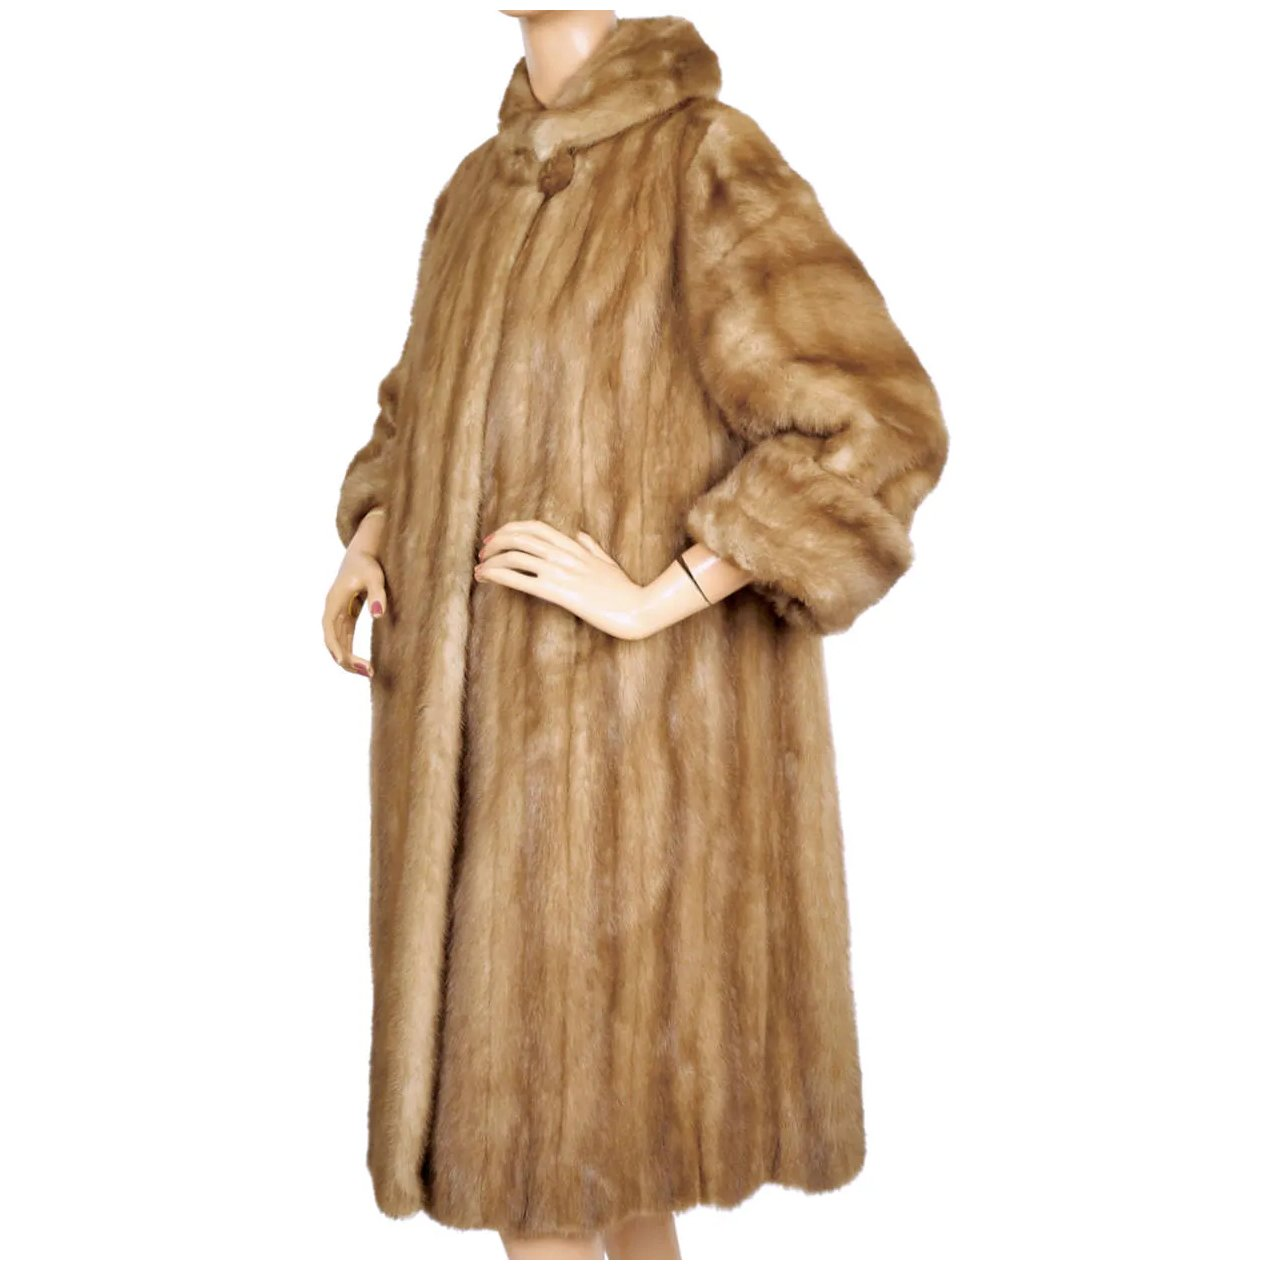 How Much Did A Mink Coat Cost In 1950, How Much Did A Mink Coat Cost In 1950